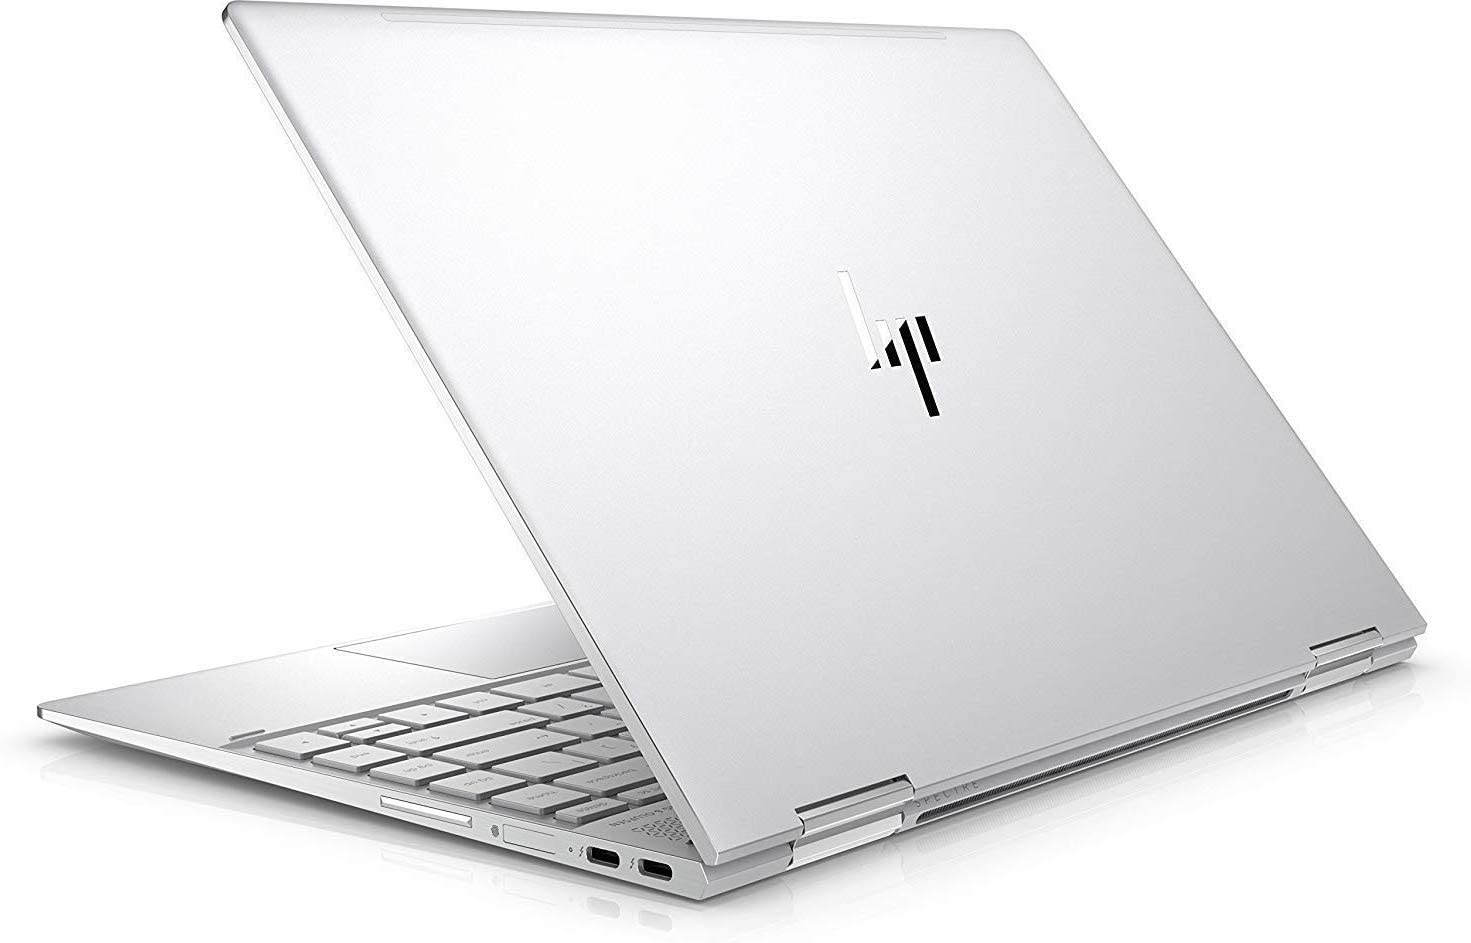 "Newest HP Spectre x360-13t Quad Core(8th Gen Intel i7-8550U, 16GB DDR4, 512GB PCIe NVMe SSD, IPS micro-edge Touchscreen Corning Gorilla, Windows 10 Ink)Bang&Olufsen 13.3"" 2-in-1 Convertible - Dark Ash"